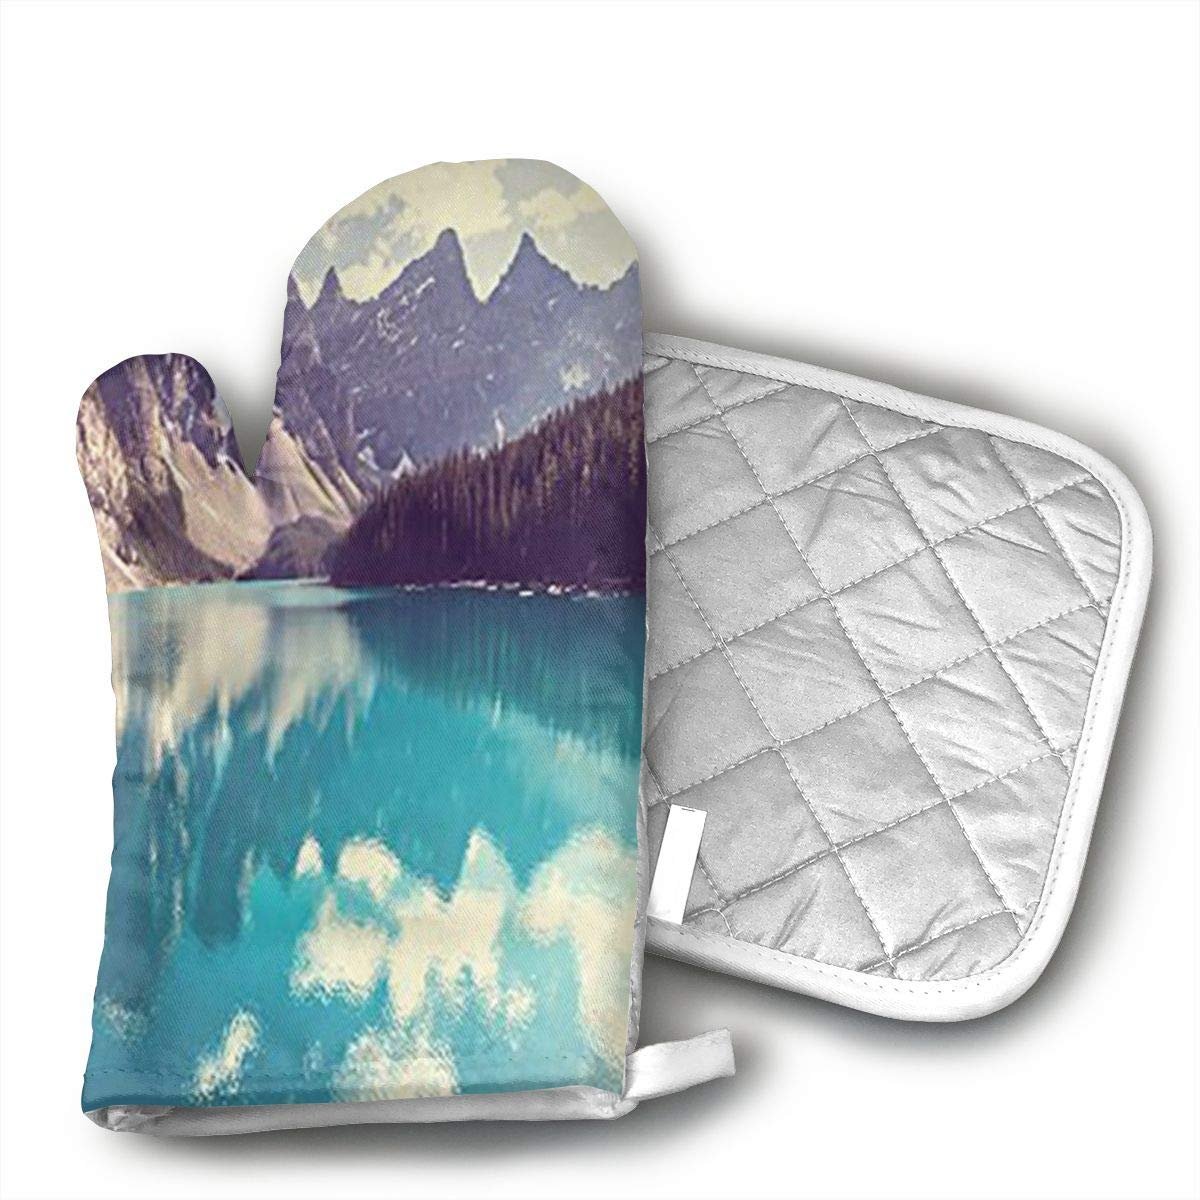 Moraine Lake in Banff National Park Oven Mitts,Heat Resistant to 502 F£¬Non Slip Kitchen Oven Gloves for Cooking,Baking,Grilling,Barbecue Potholders